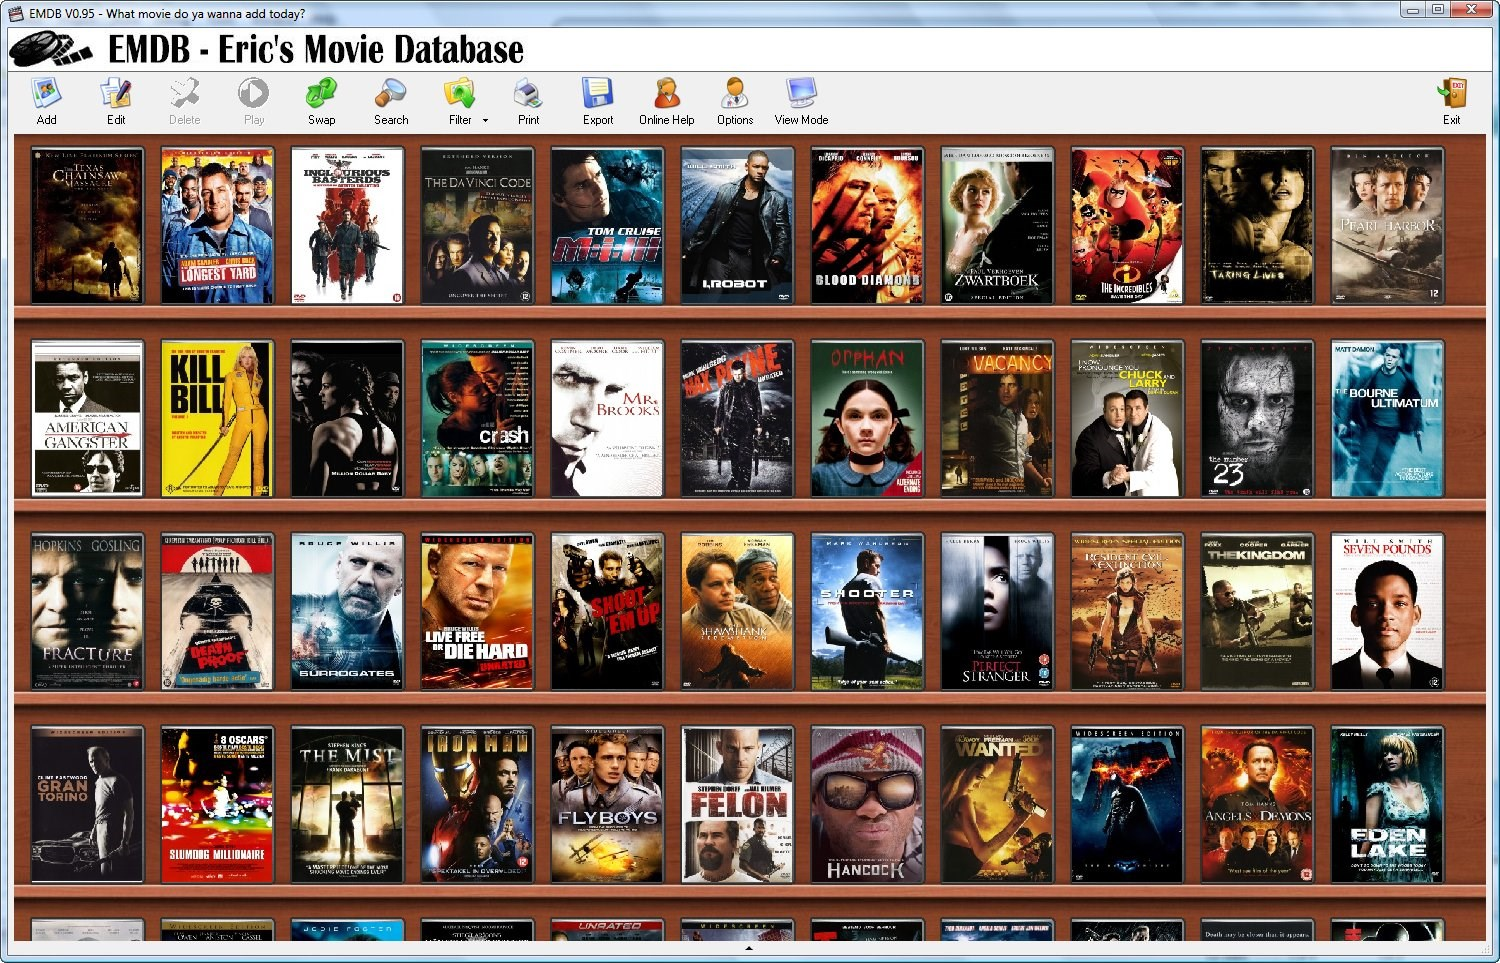 EMDB - Eric's Movie Database screenshot 0